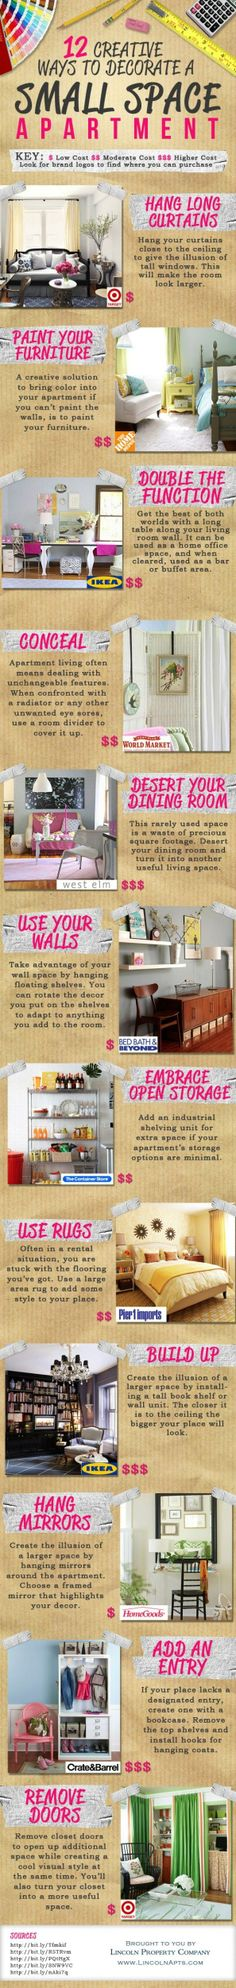 12 Creative Ways to Decorate a Small Space! Infographic .